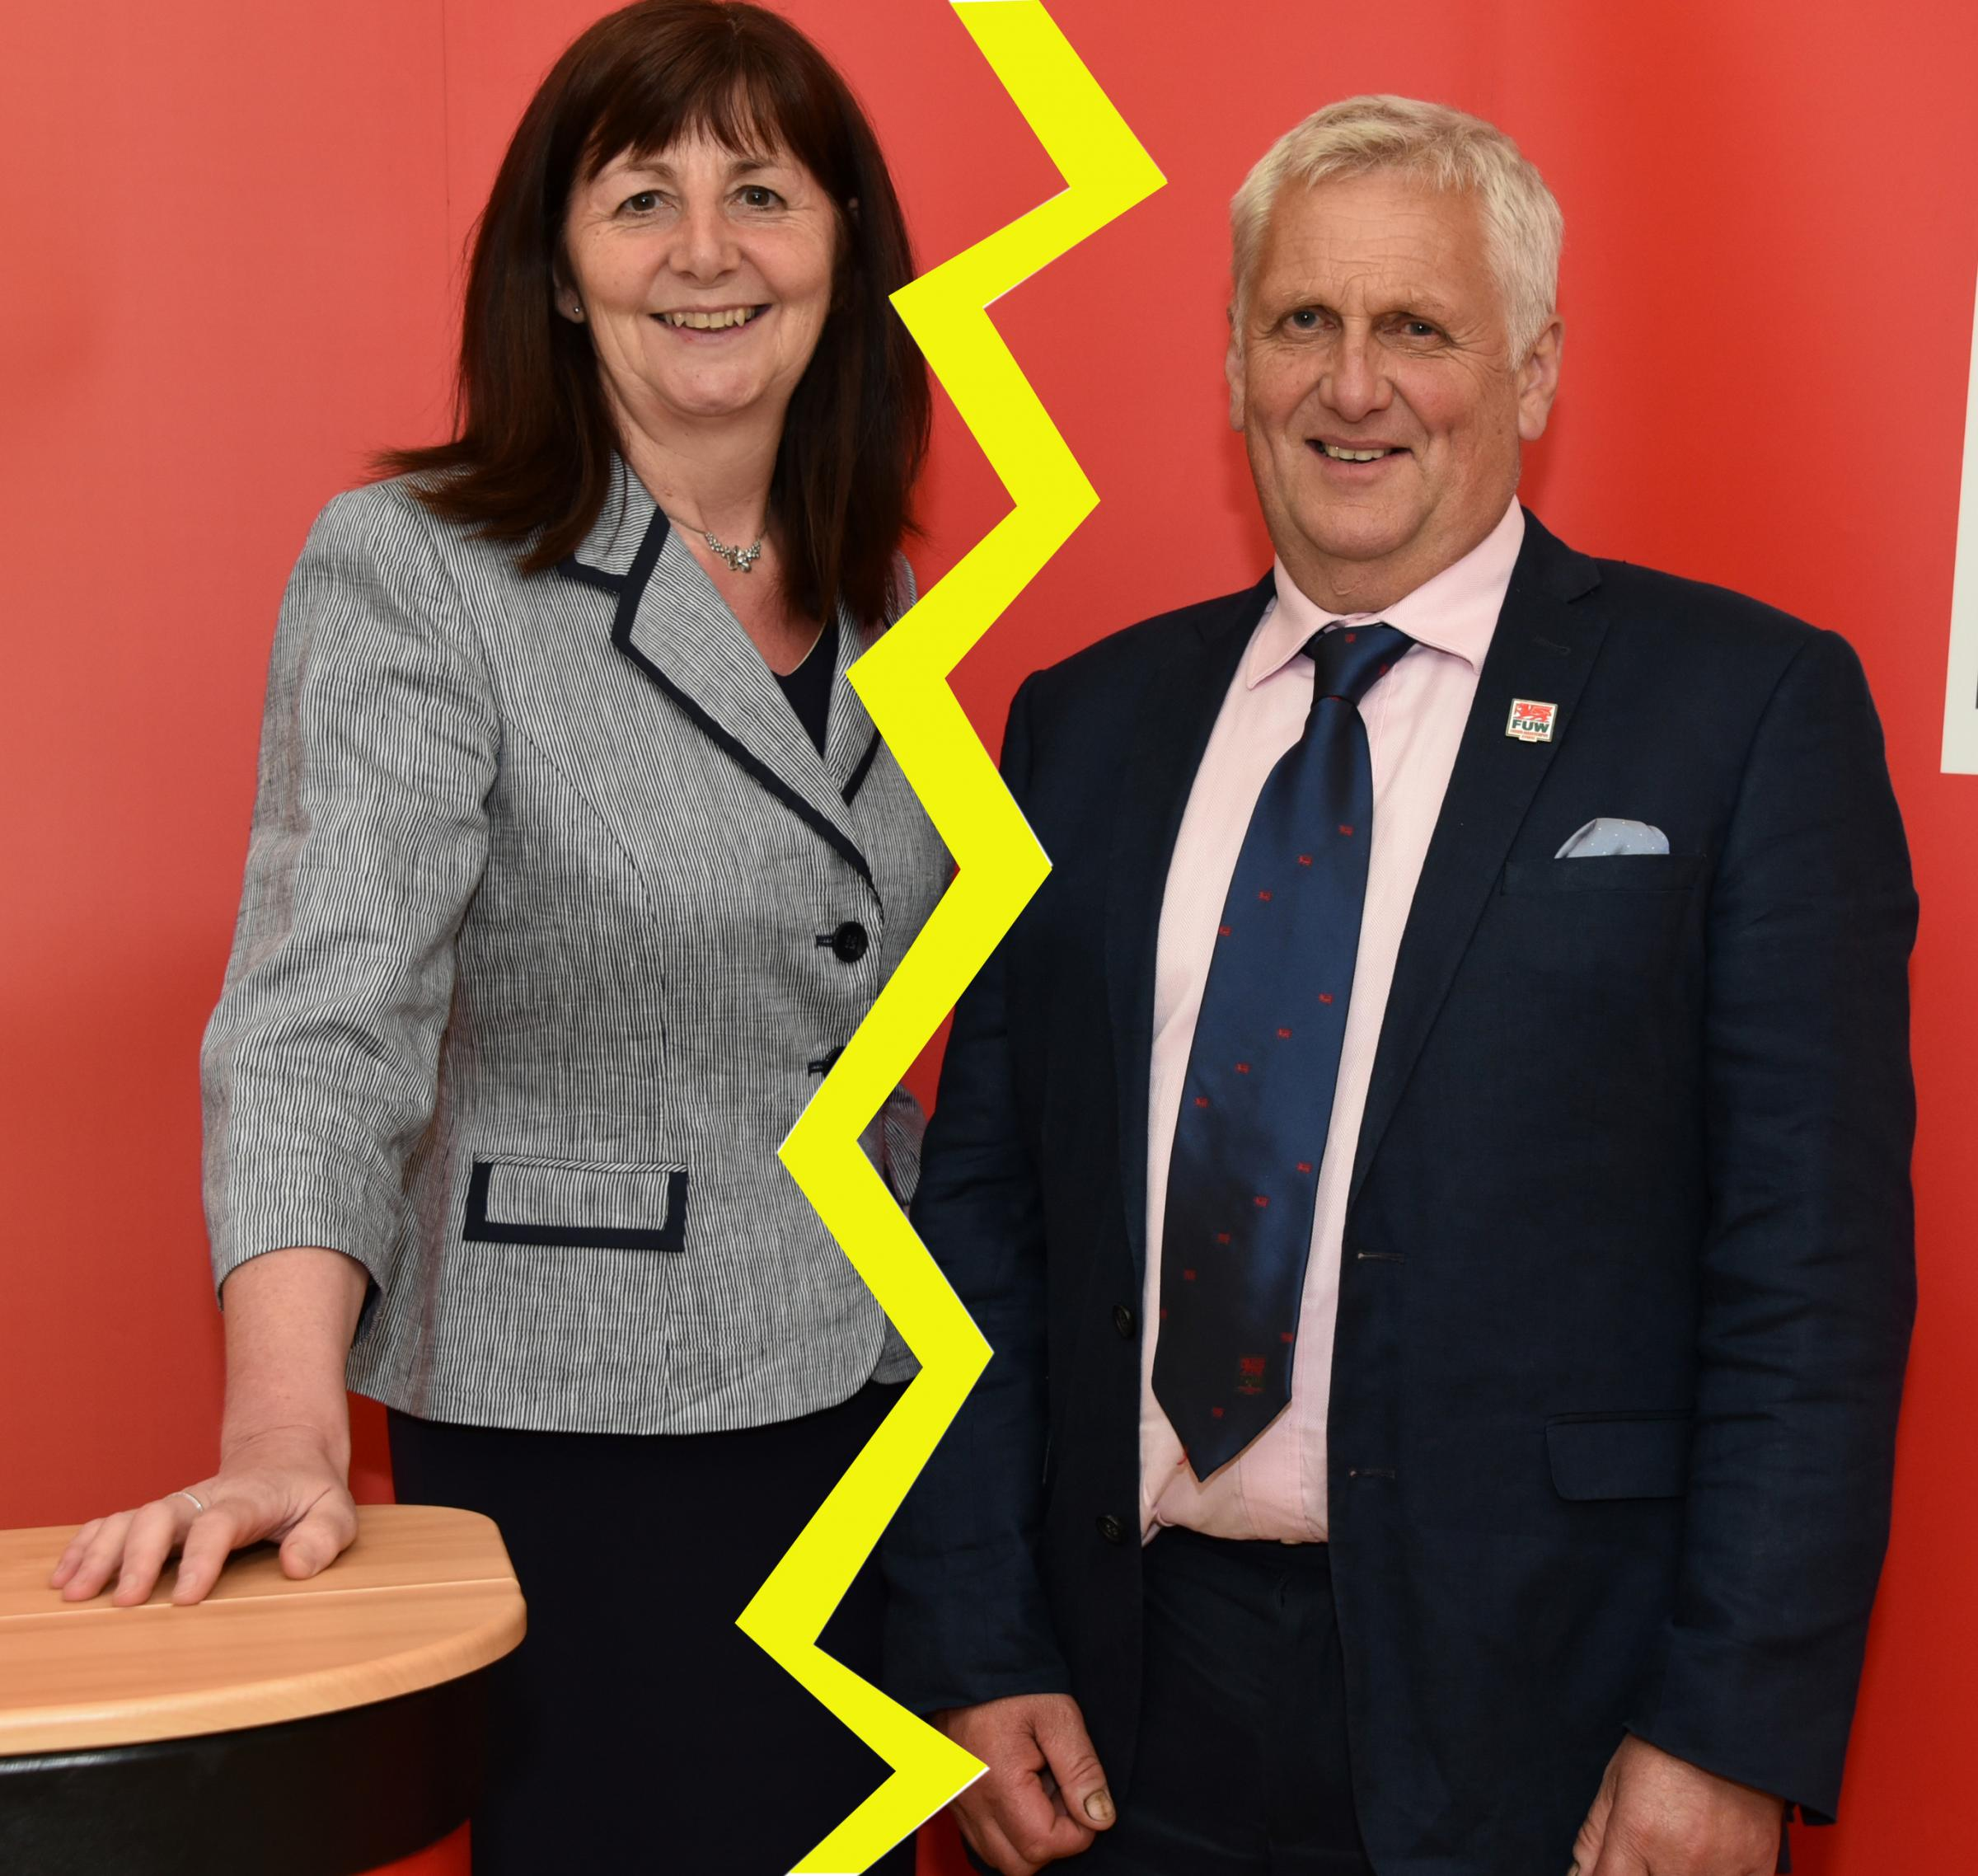 At loggerheads - cabinet secretary Lesley Griffiths and FUW president Glyn Roberts